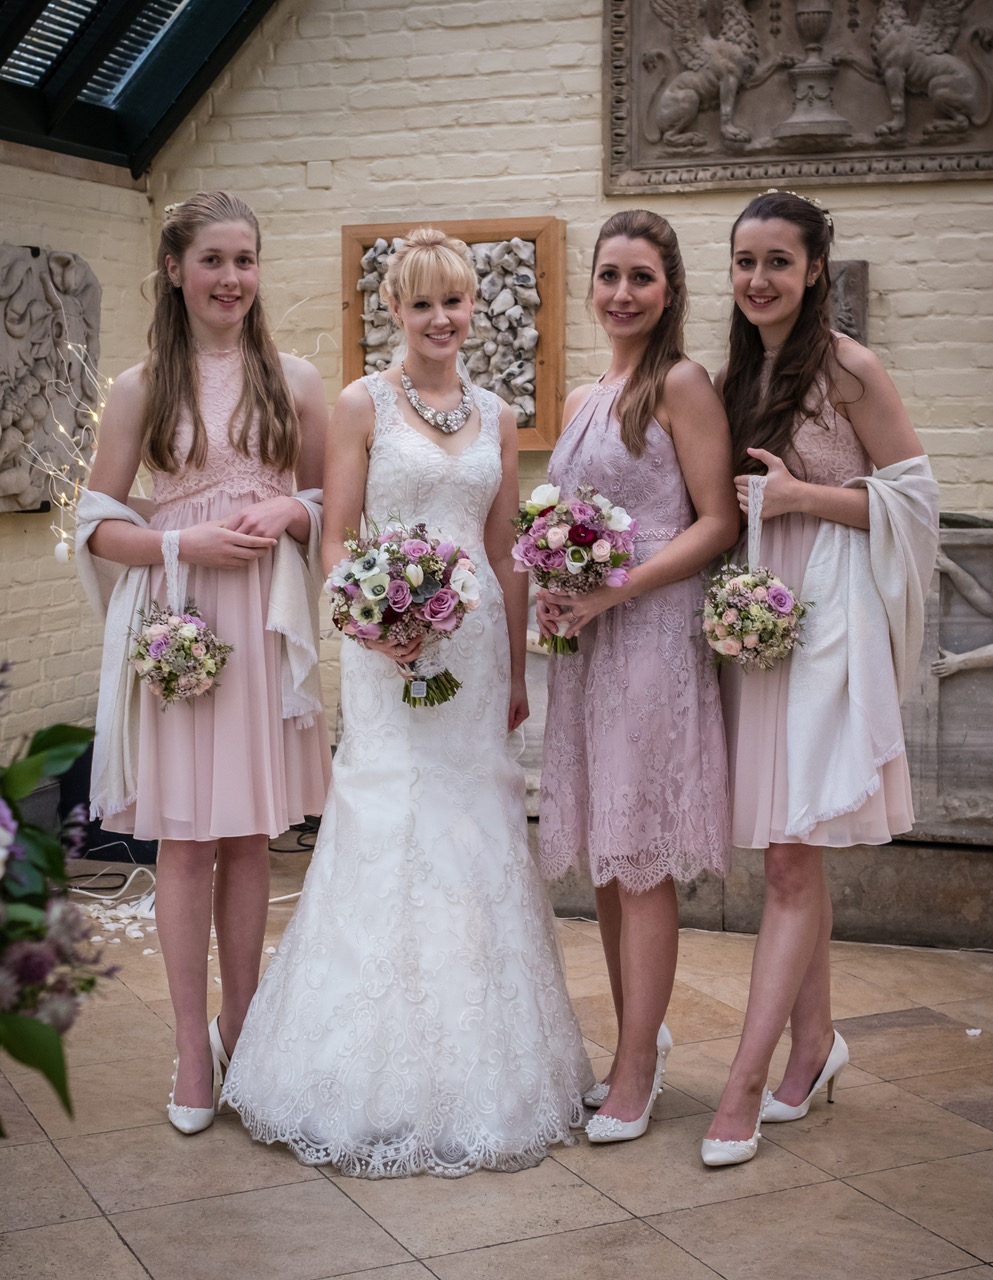 Bride and bridesmaids with bouquets at The Dairy Easter 2016 lilac, pink, white.jpeg